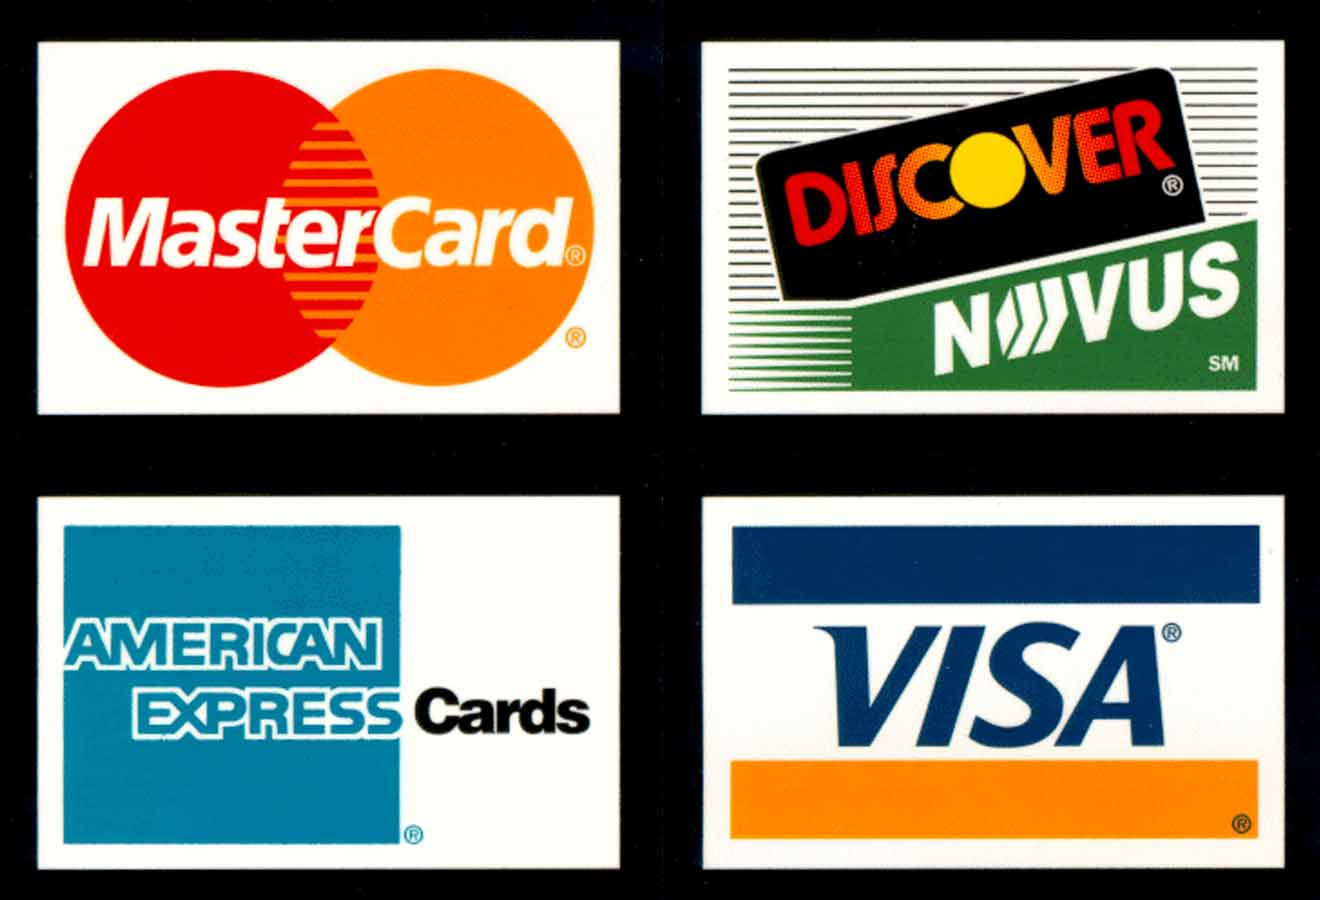 Credit Cards Now Accepted Here  Nuttall Legal, Llc. Bernie Stiroh Hr Outsourcing. Mobile Website Designs Sunrise Sunset Phoenix. Colleges For Forensic Psychology. Vasectomy Covered By Insurance. Knight Security Systems Phoenix Flight School. Treatment Of Dyspareunia Mailing List Pricing. Insurance Commissioner Wv Nursing In College. Laser Hair Removal Beard Csu Transfer Credits